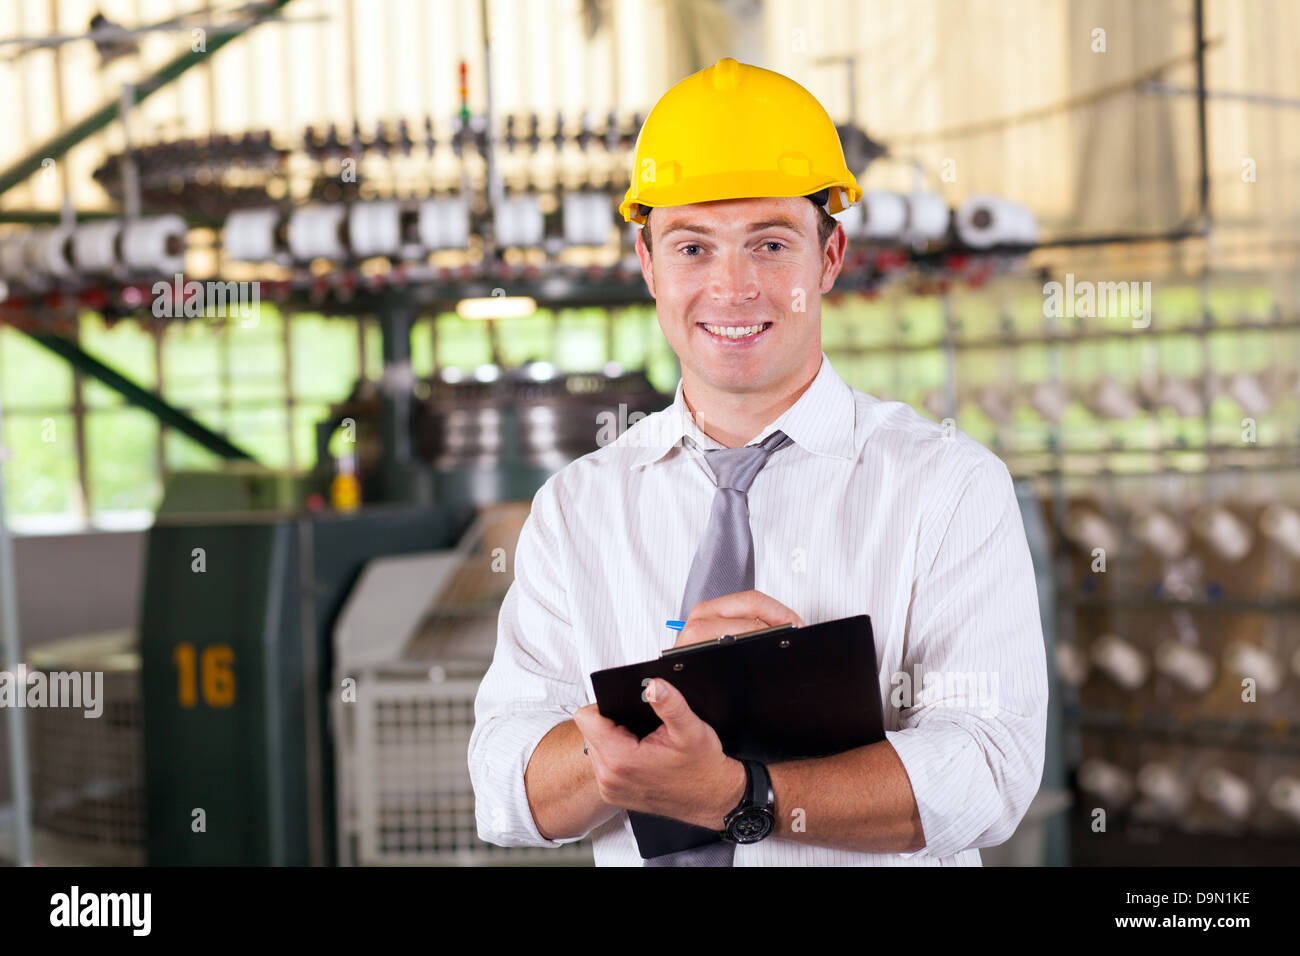 textile factory manager portrait in production area - Stock Image